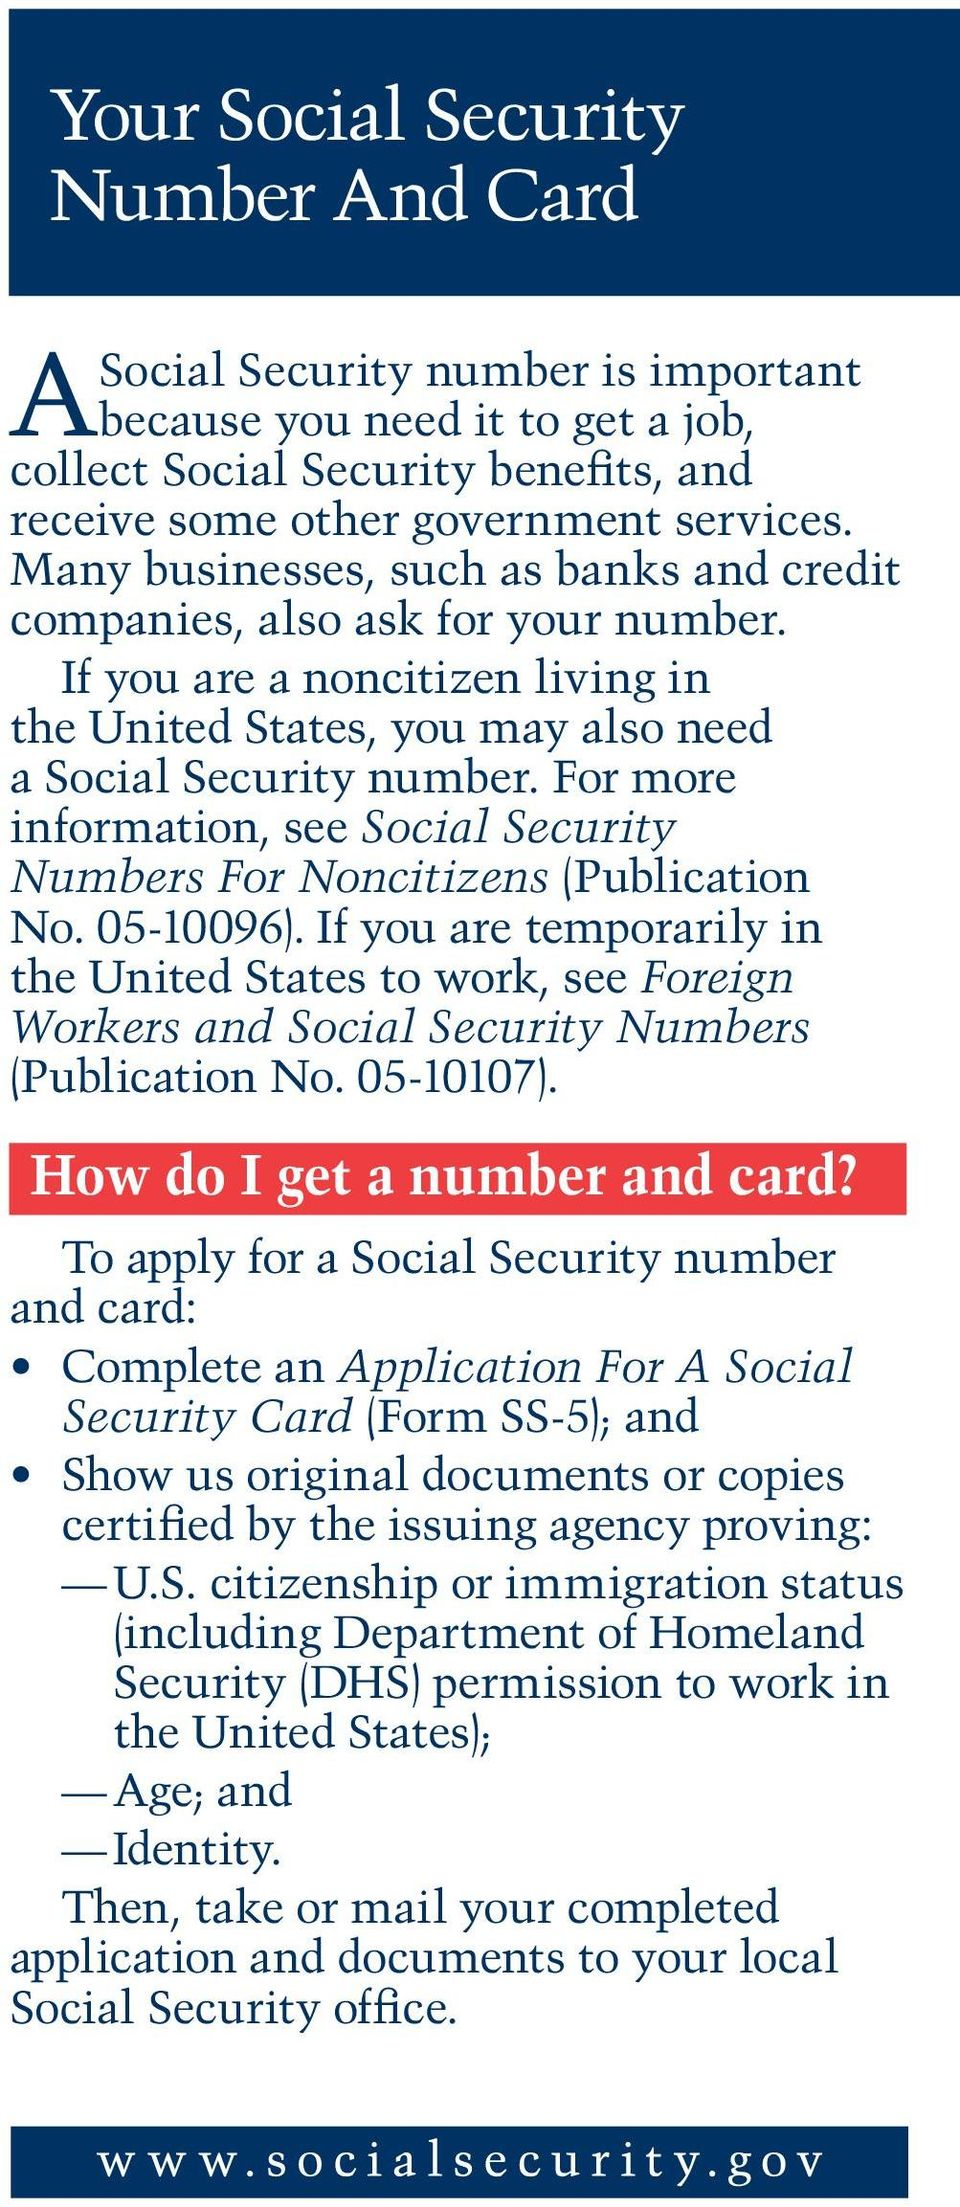 For more information, see Social Security Numbers For Noncitizens (Publication No. 05-10096).